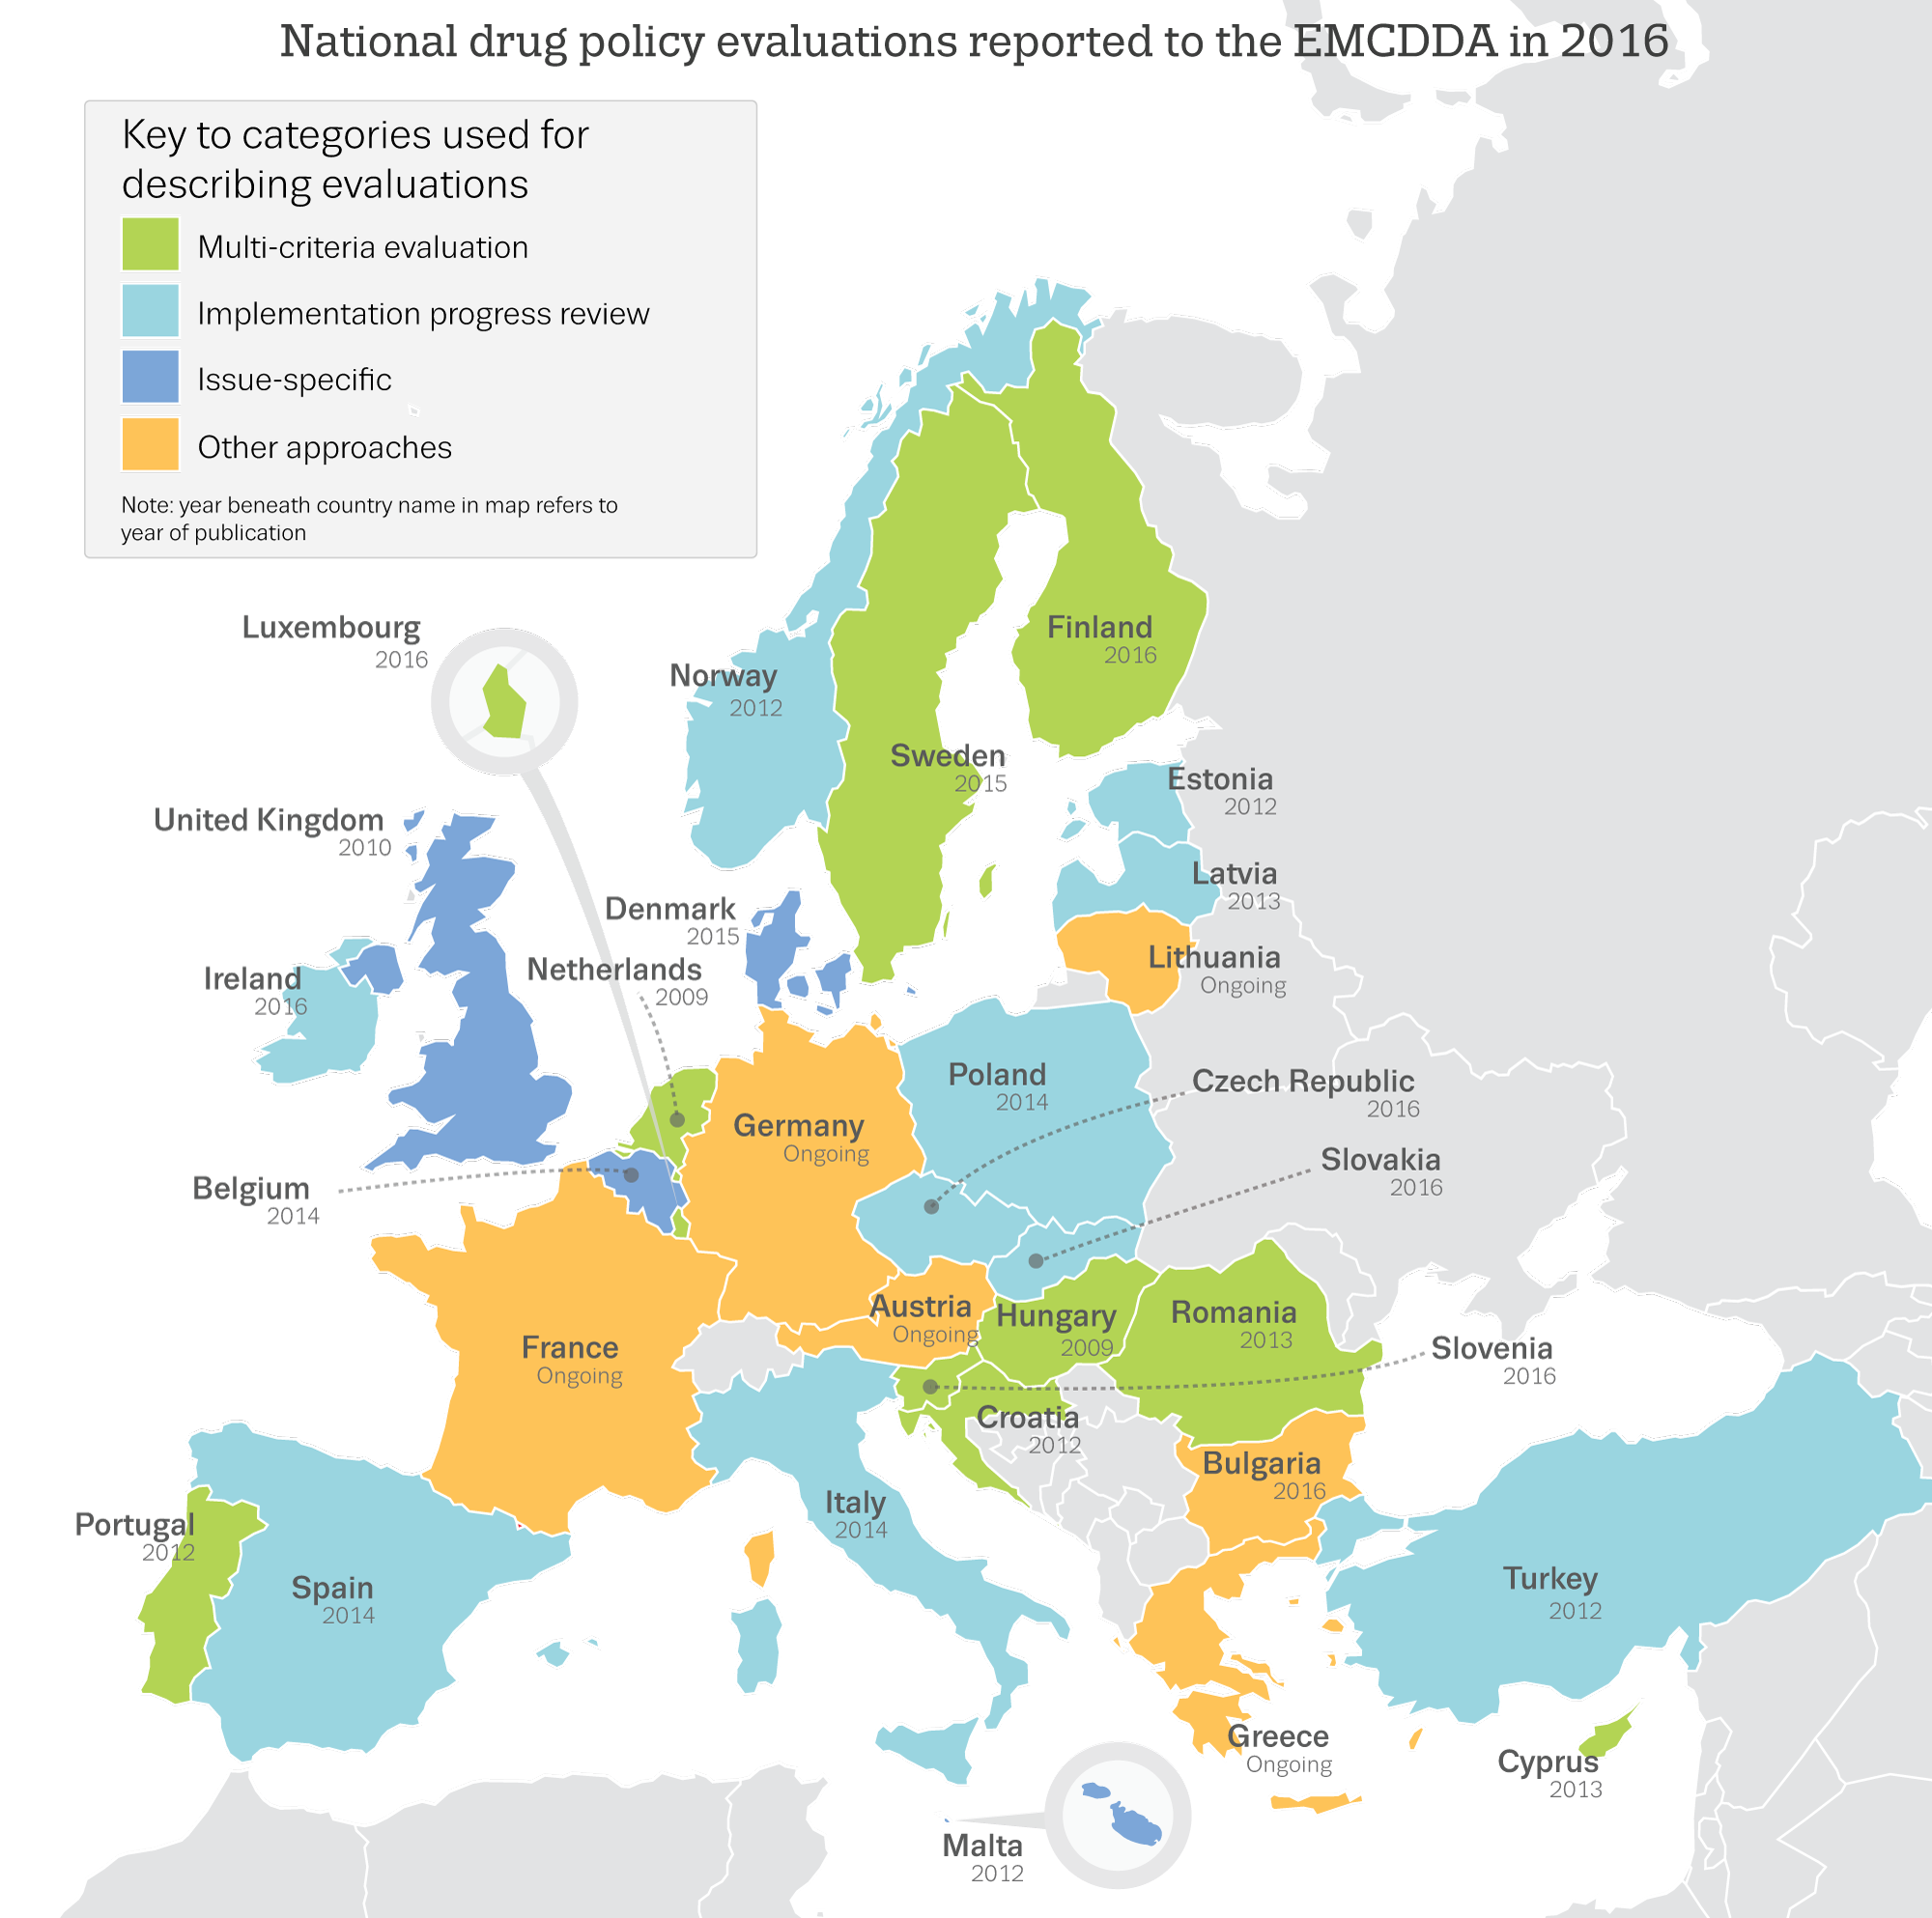 Map of Europe showing policy evaluations by country as reported to the EMCDDA